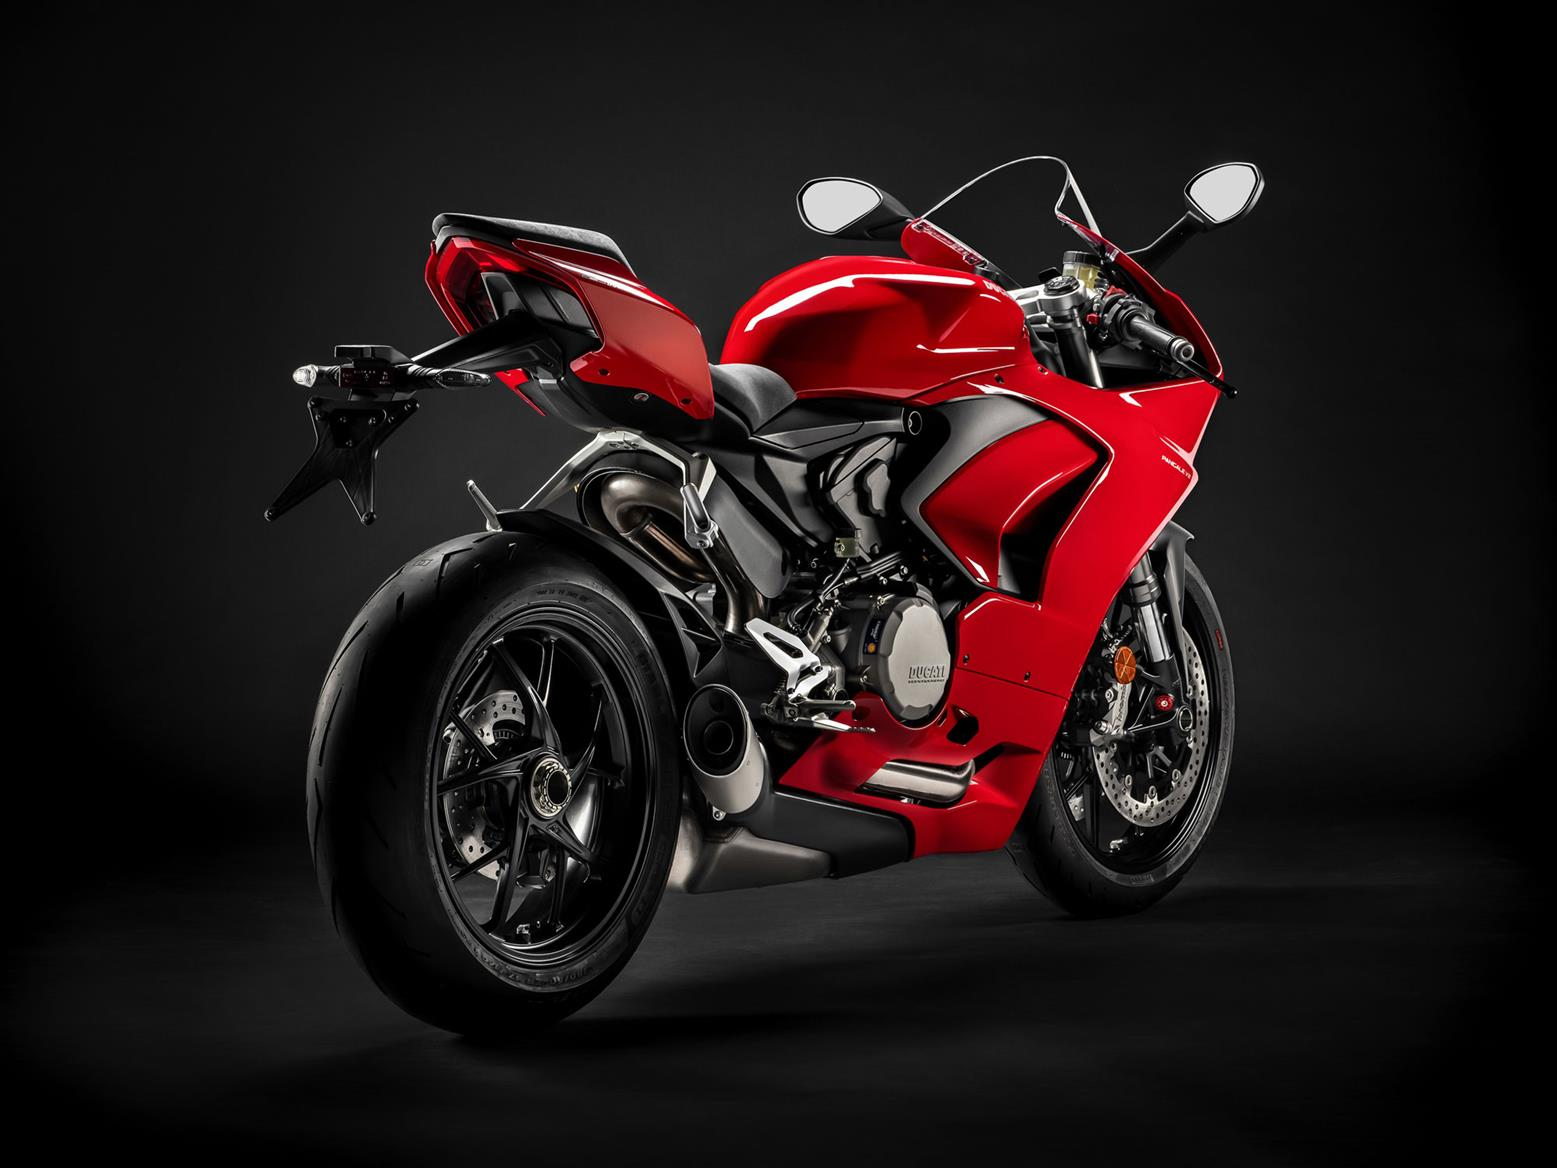 Ducati Panigale V2 rear end, exhaust and tail